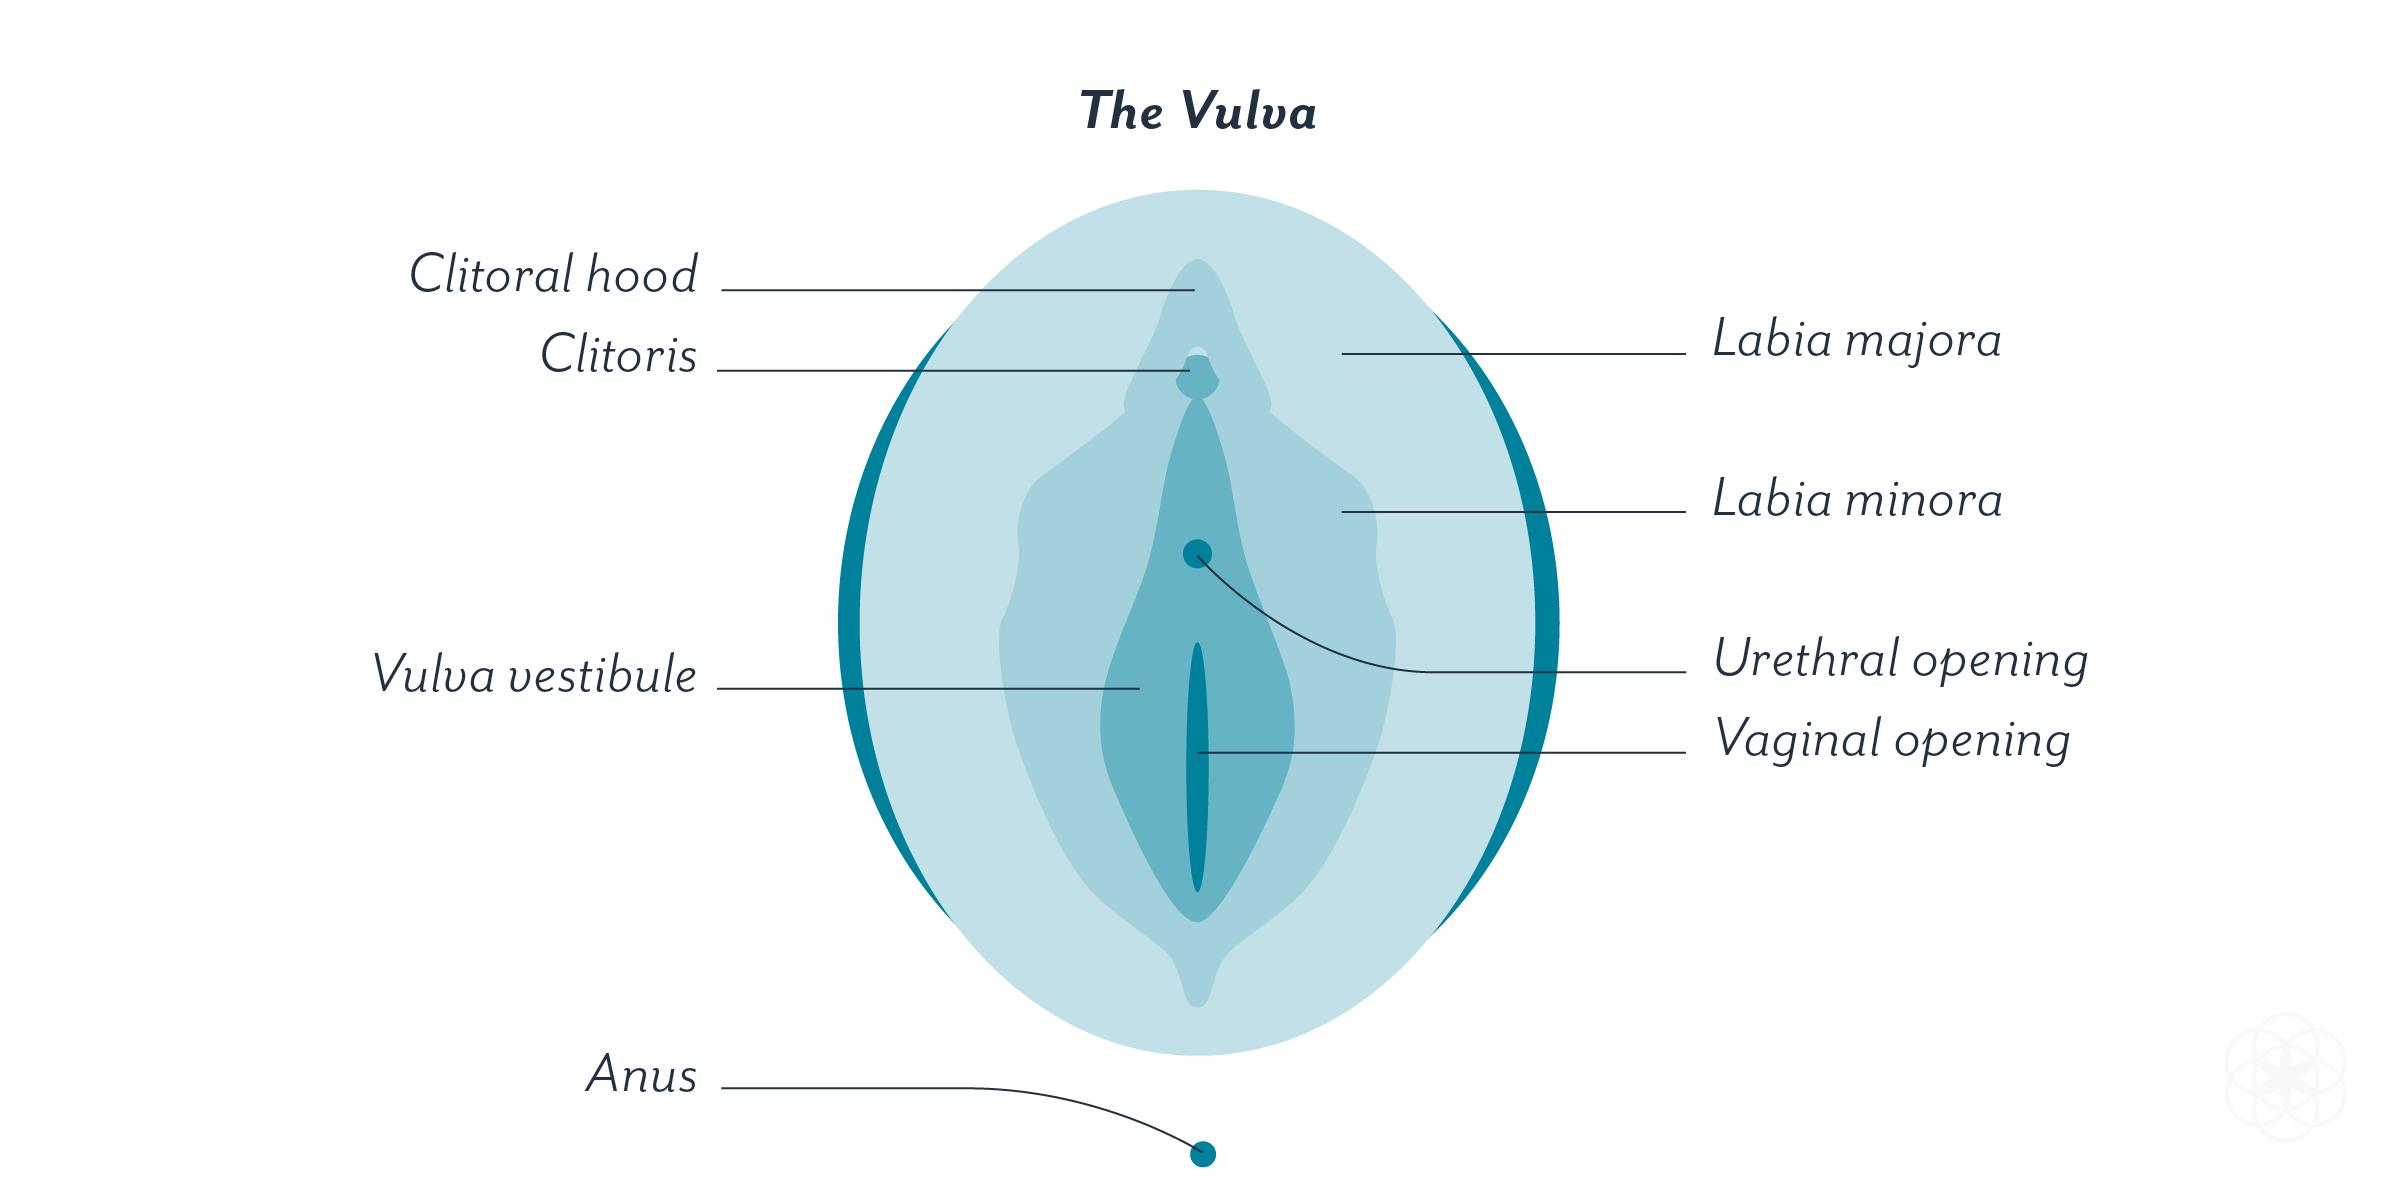 A labeled illustration of the vulva